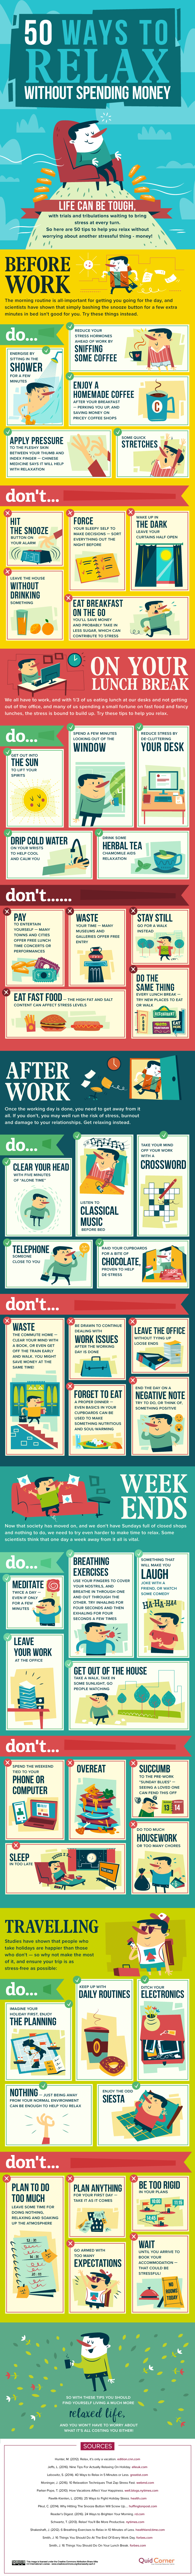 50 Cost-Efficient Ways To Relax